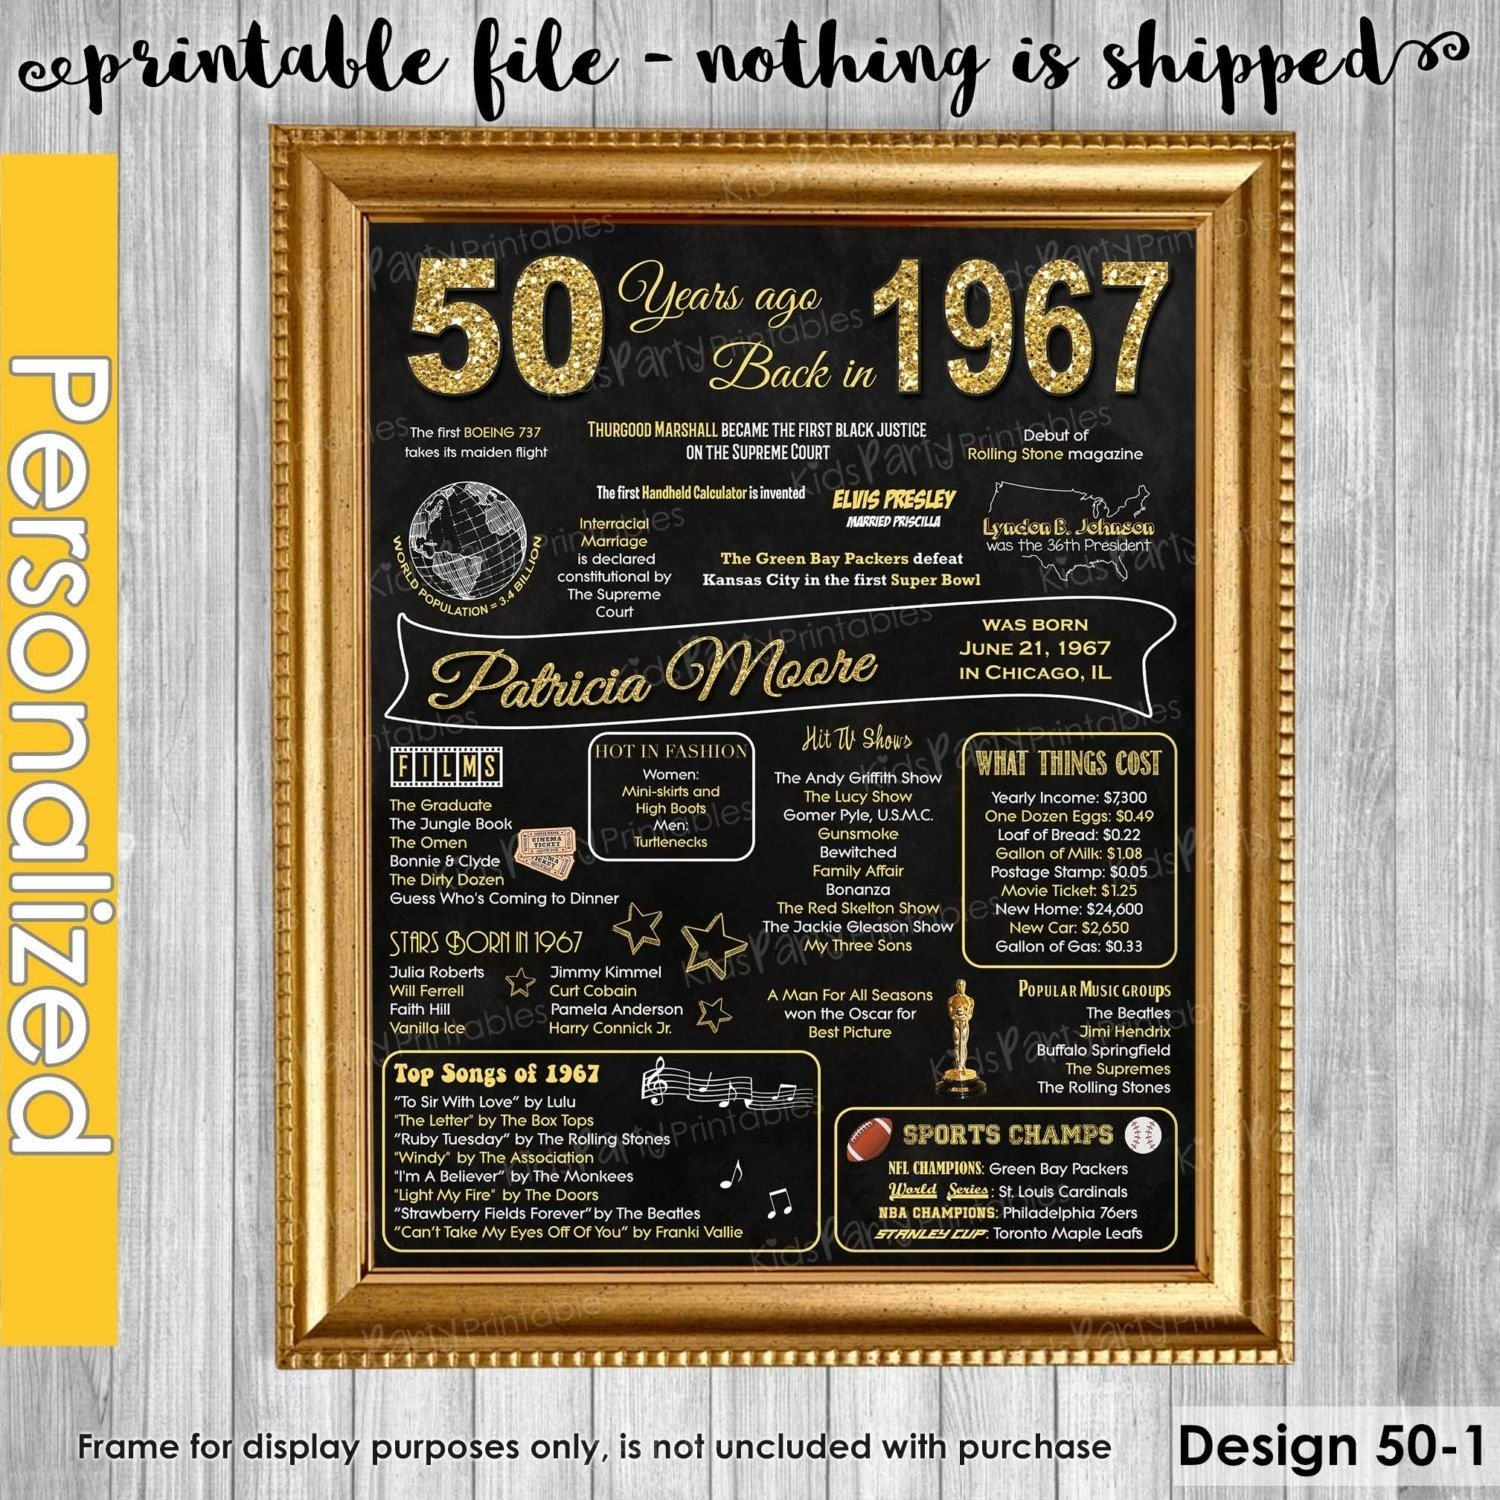 10 Attractive Gift Ideas For 50Th Birthday Woman 1967 50th Chalkboard Sign Poster Our Personalized